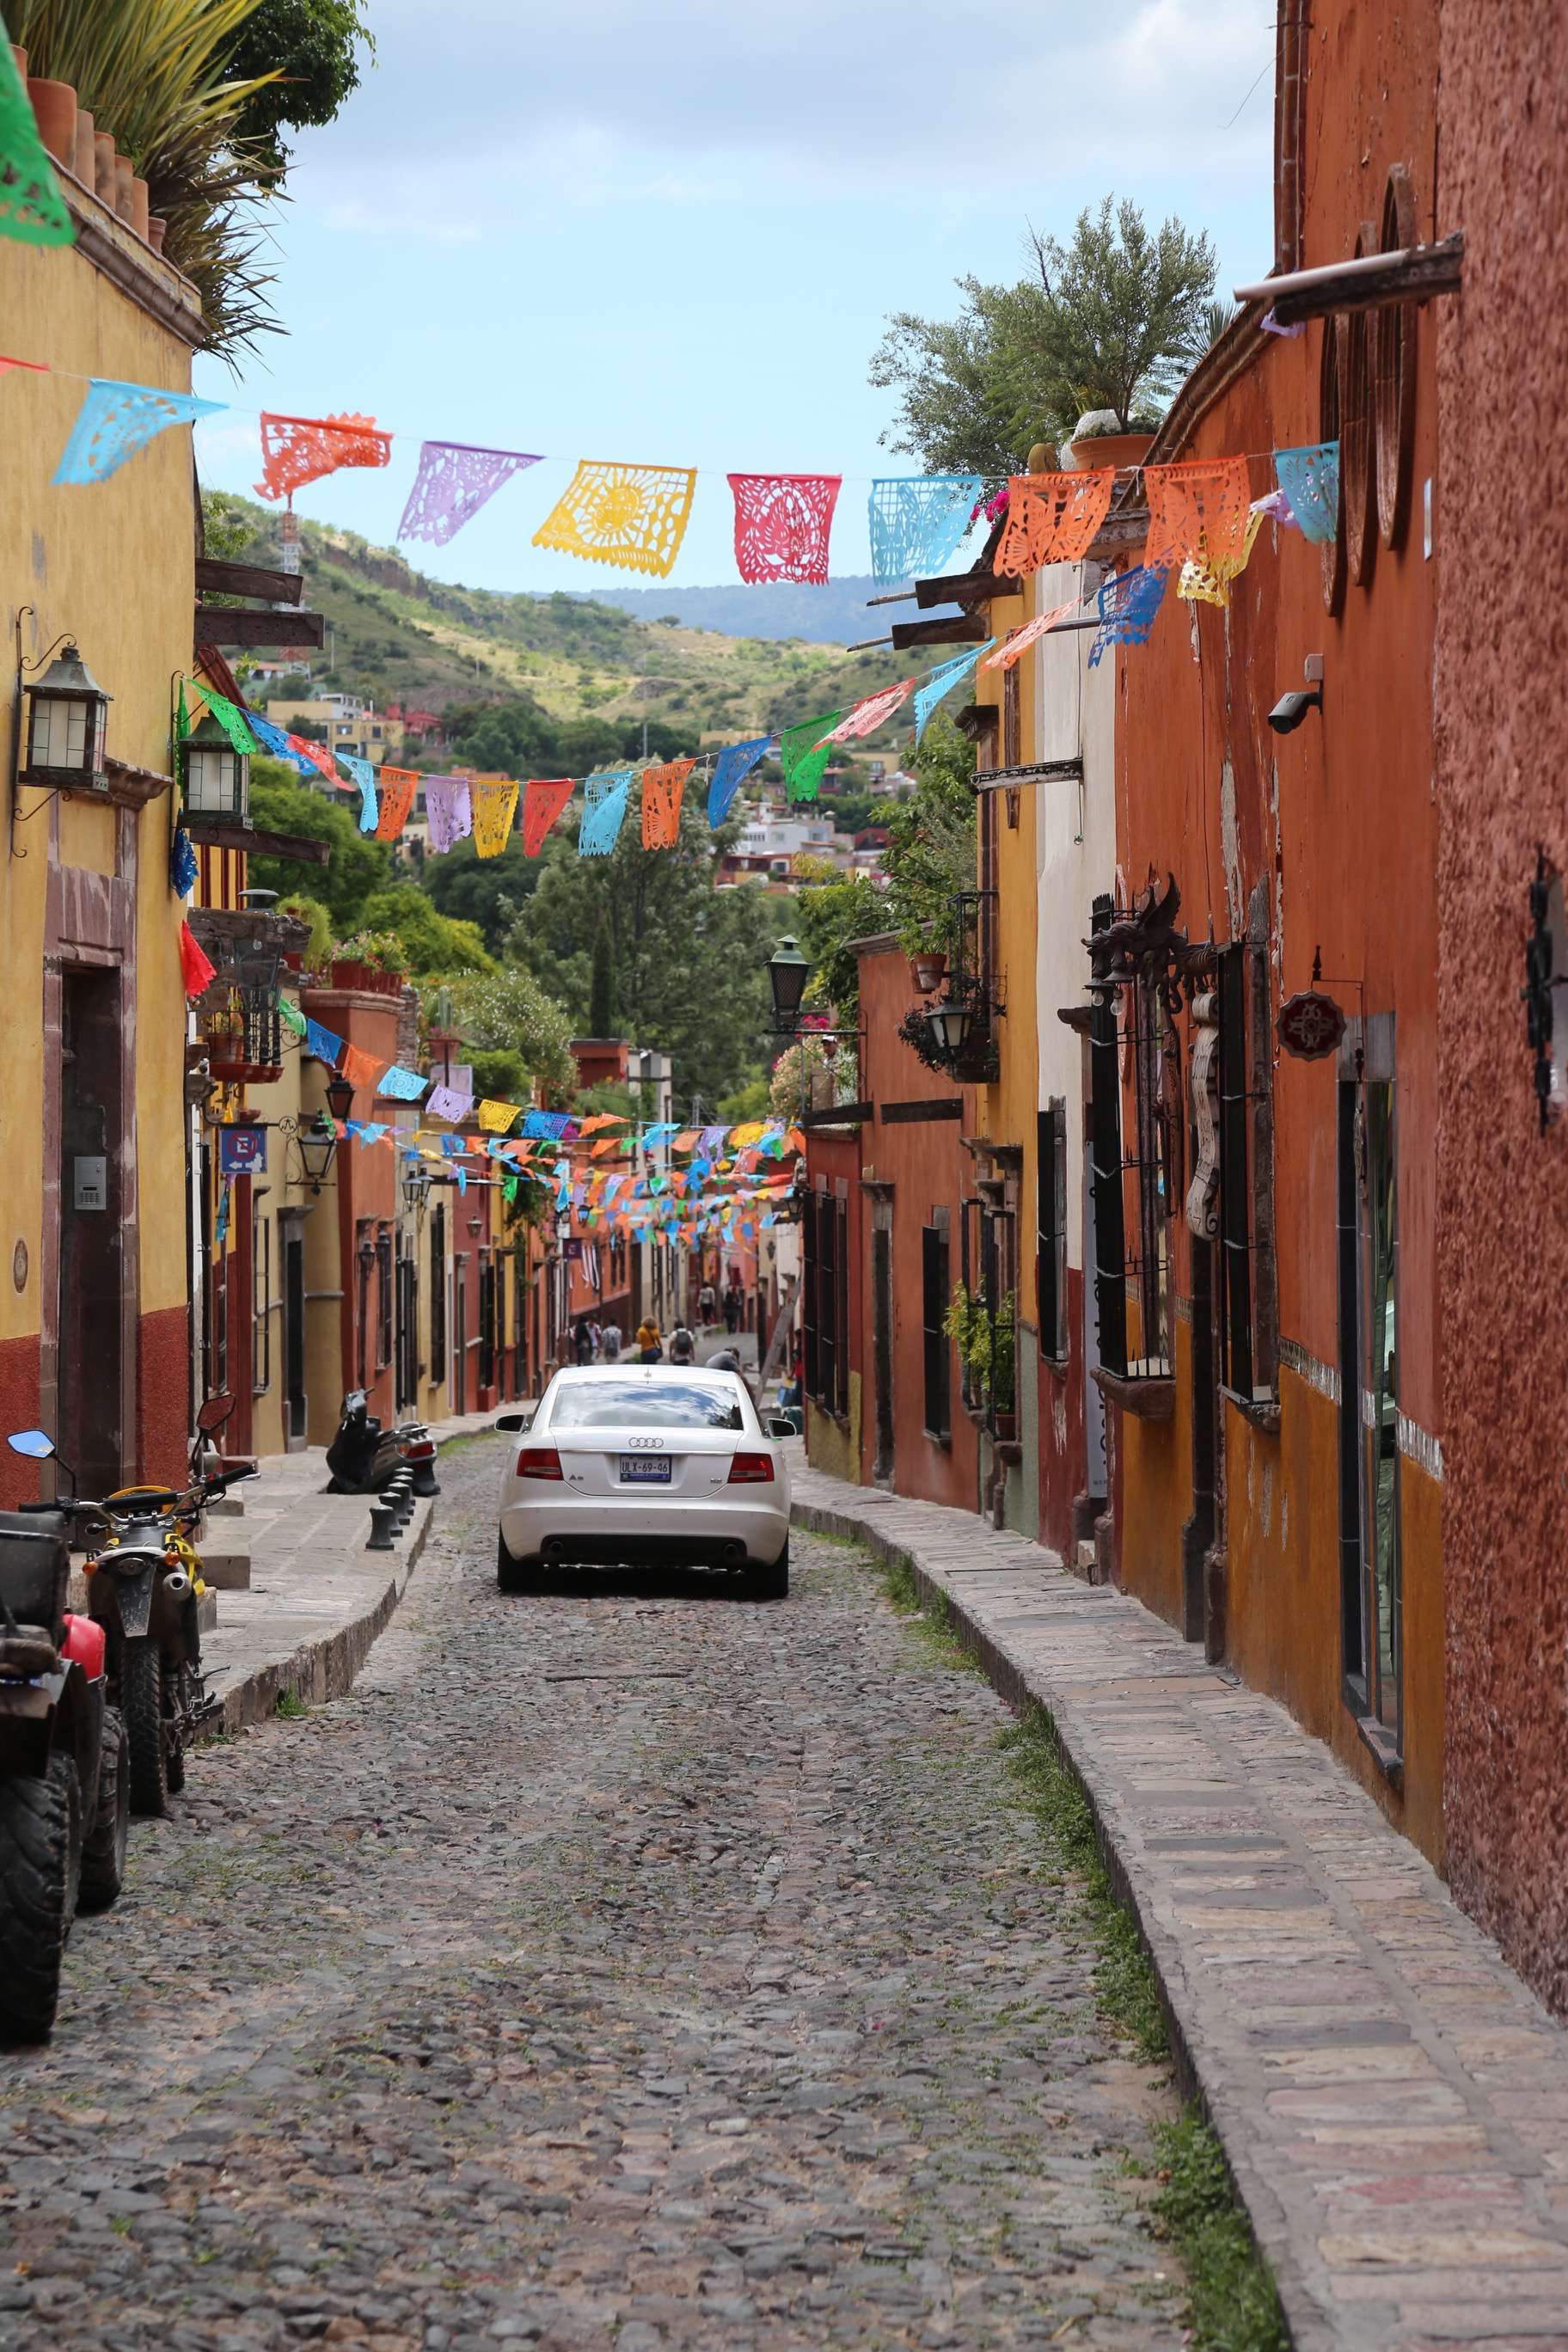 Look down almost any street in San Miguel de Allende and you will find color and charm.